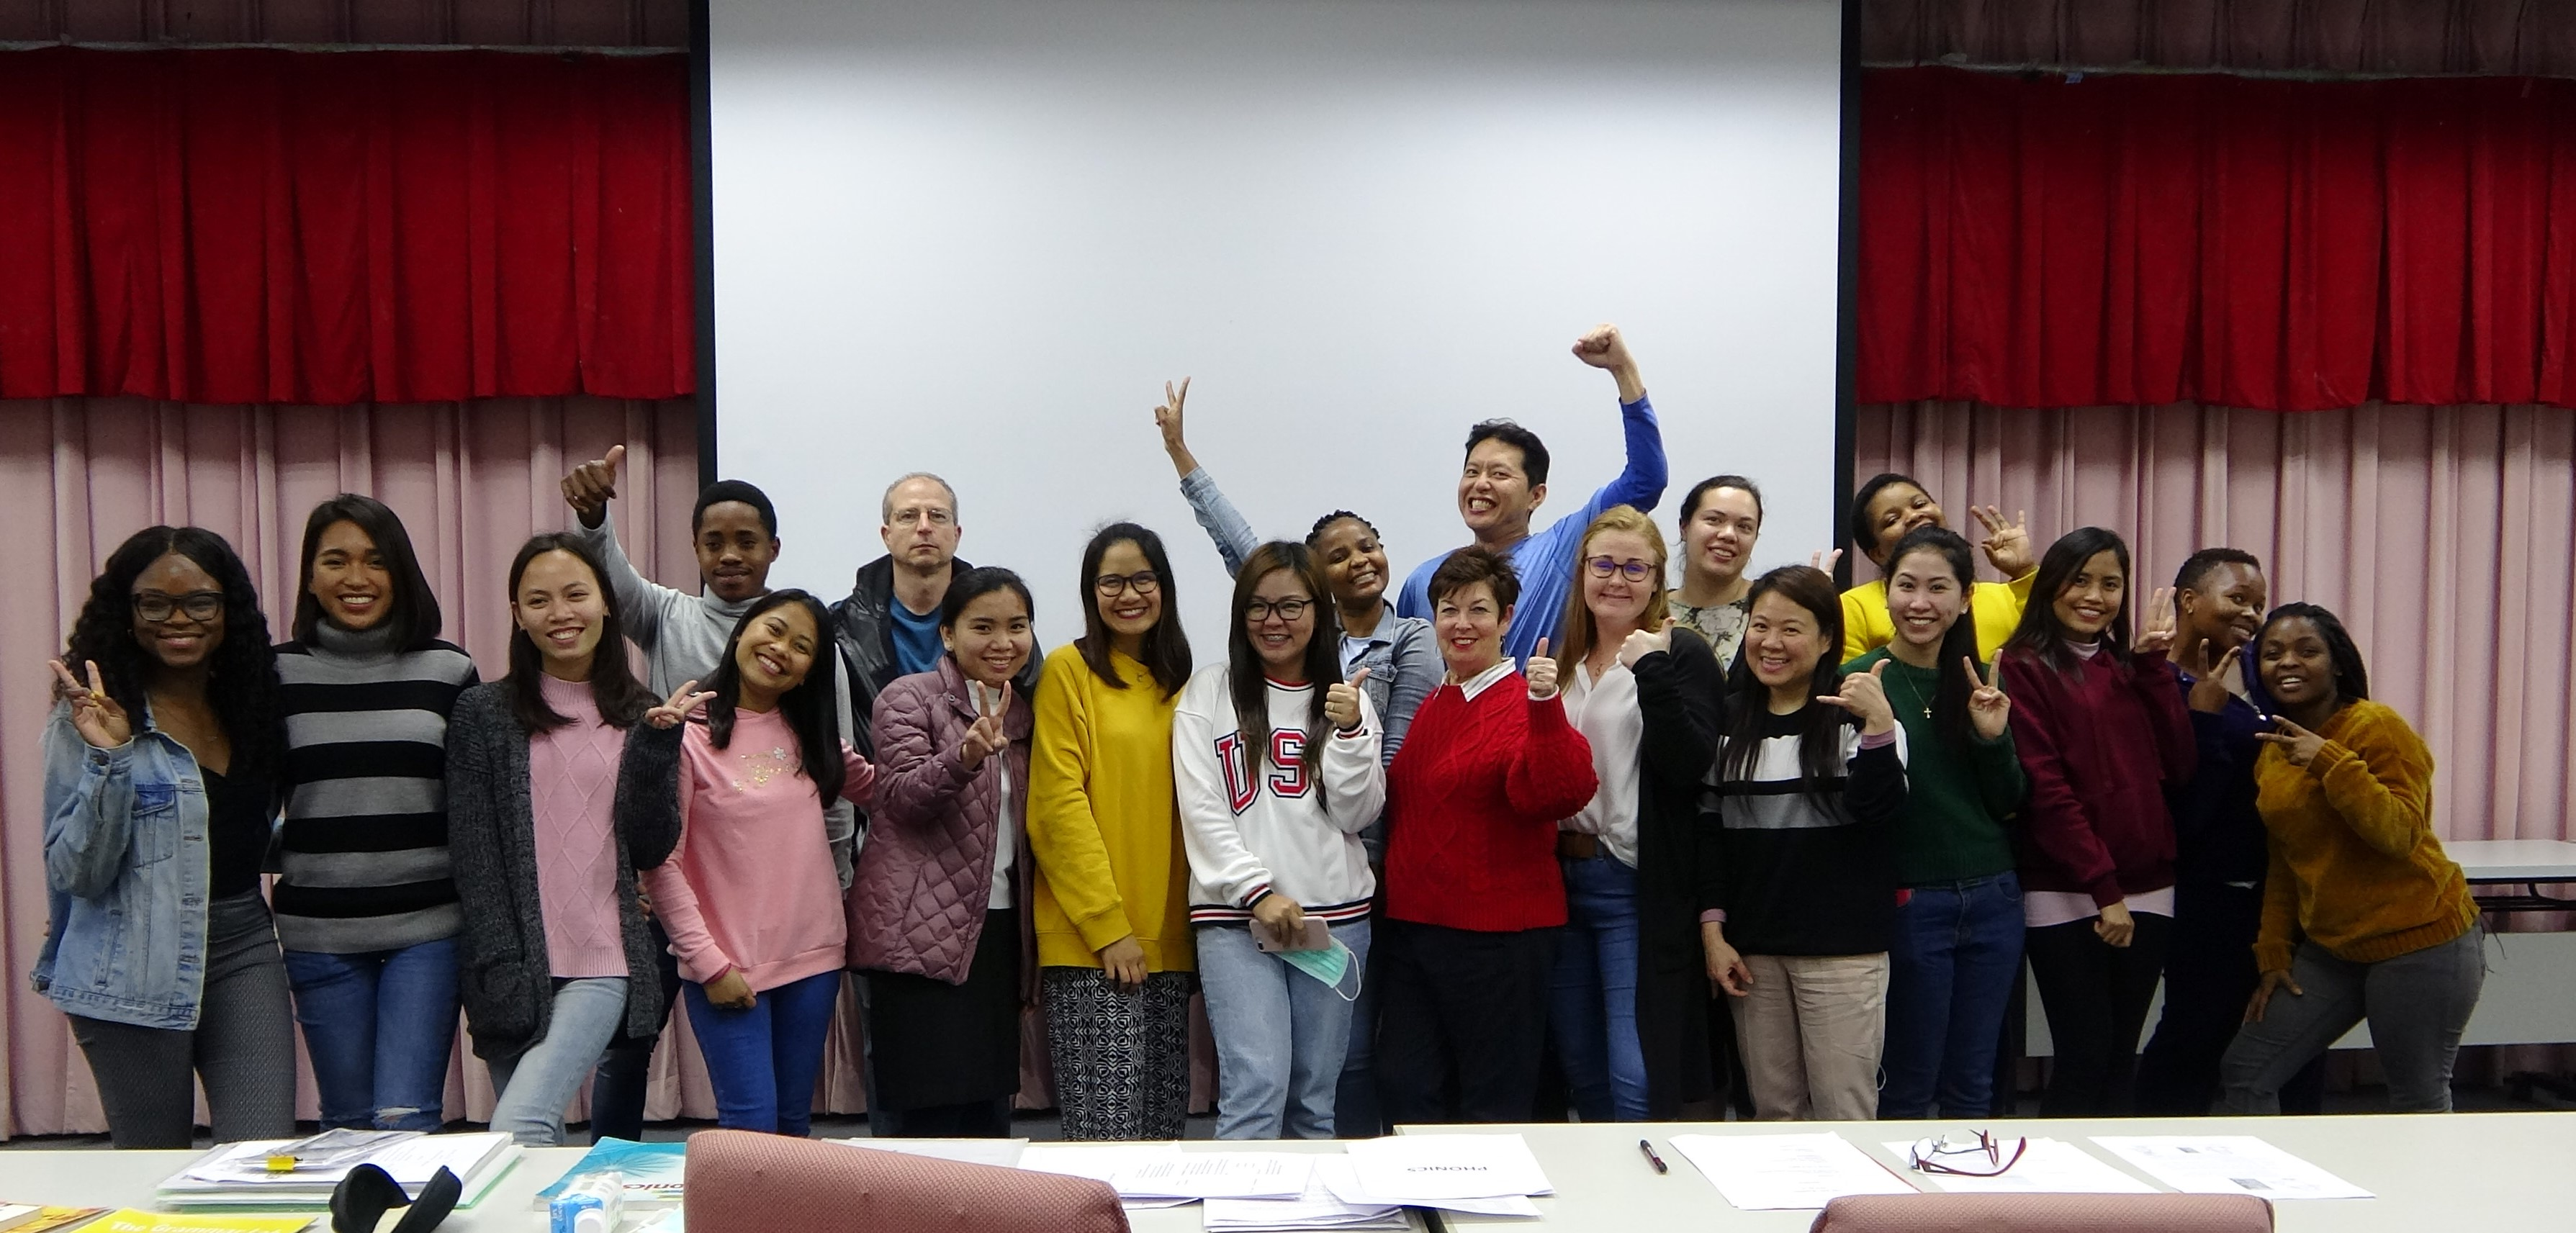 teach-taiwan-teachng-staff-photo